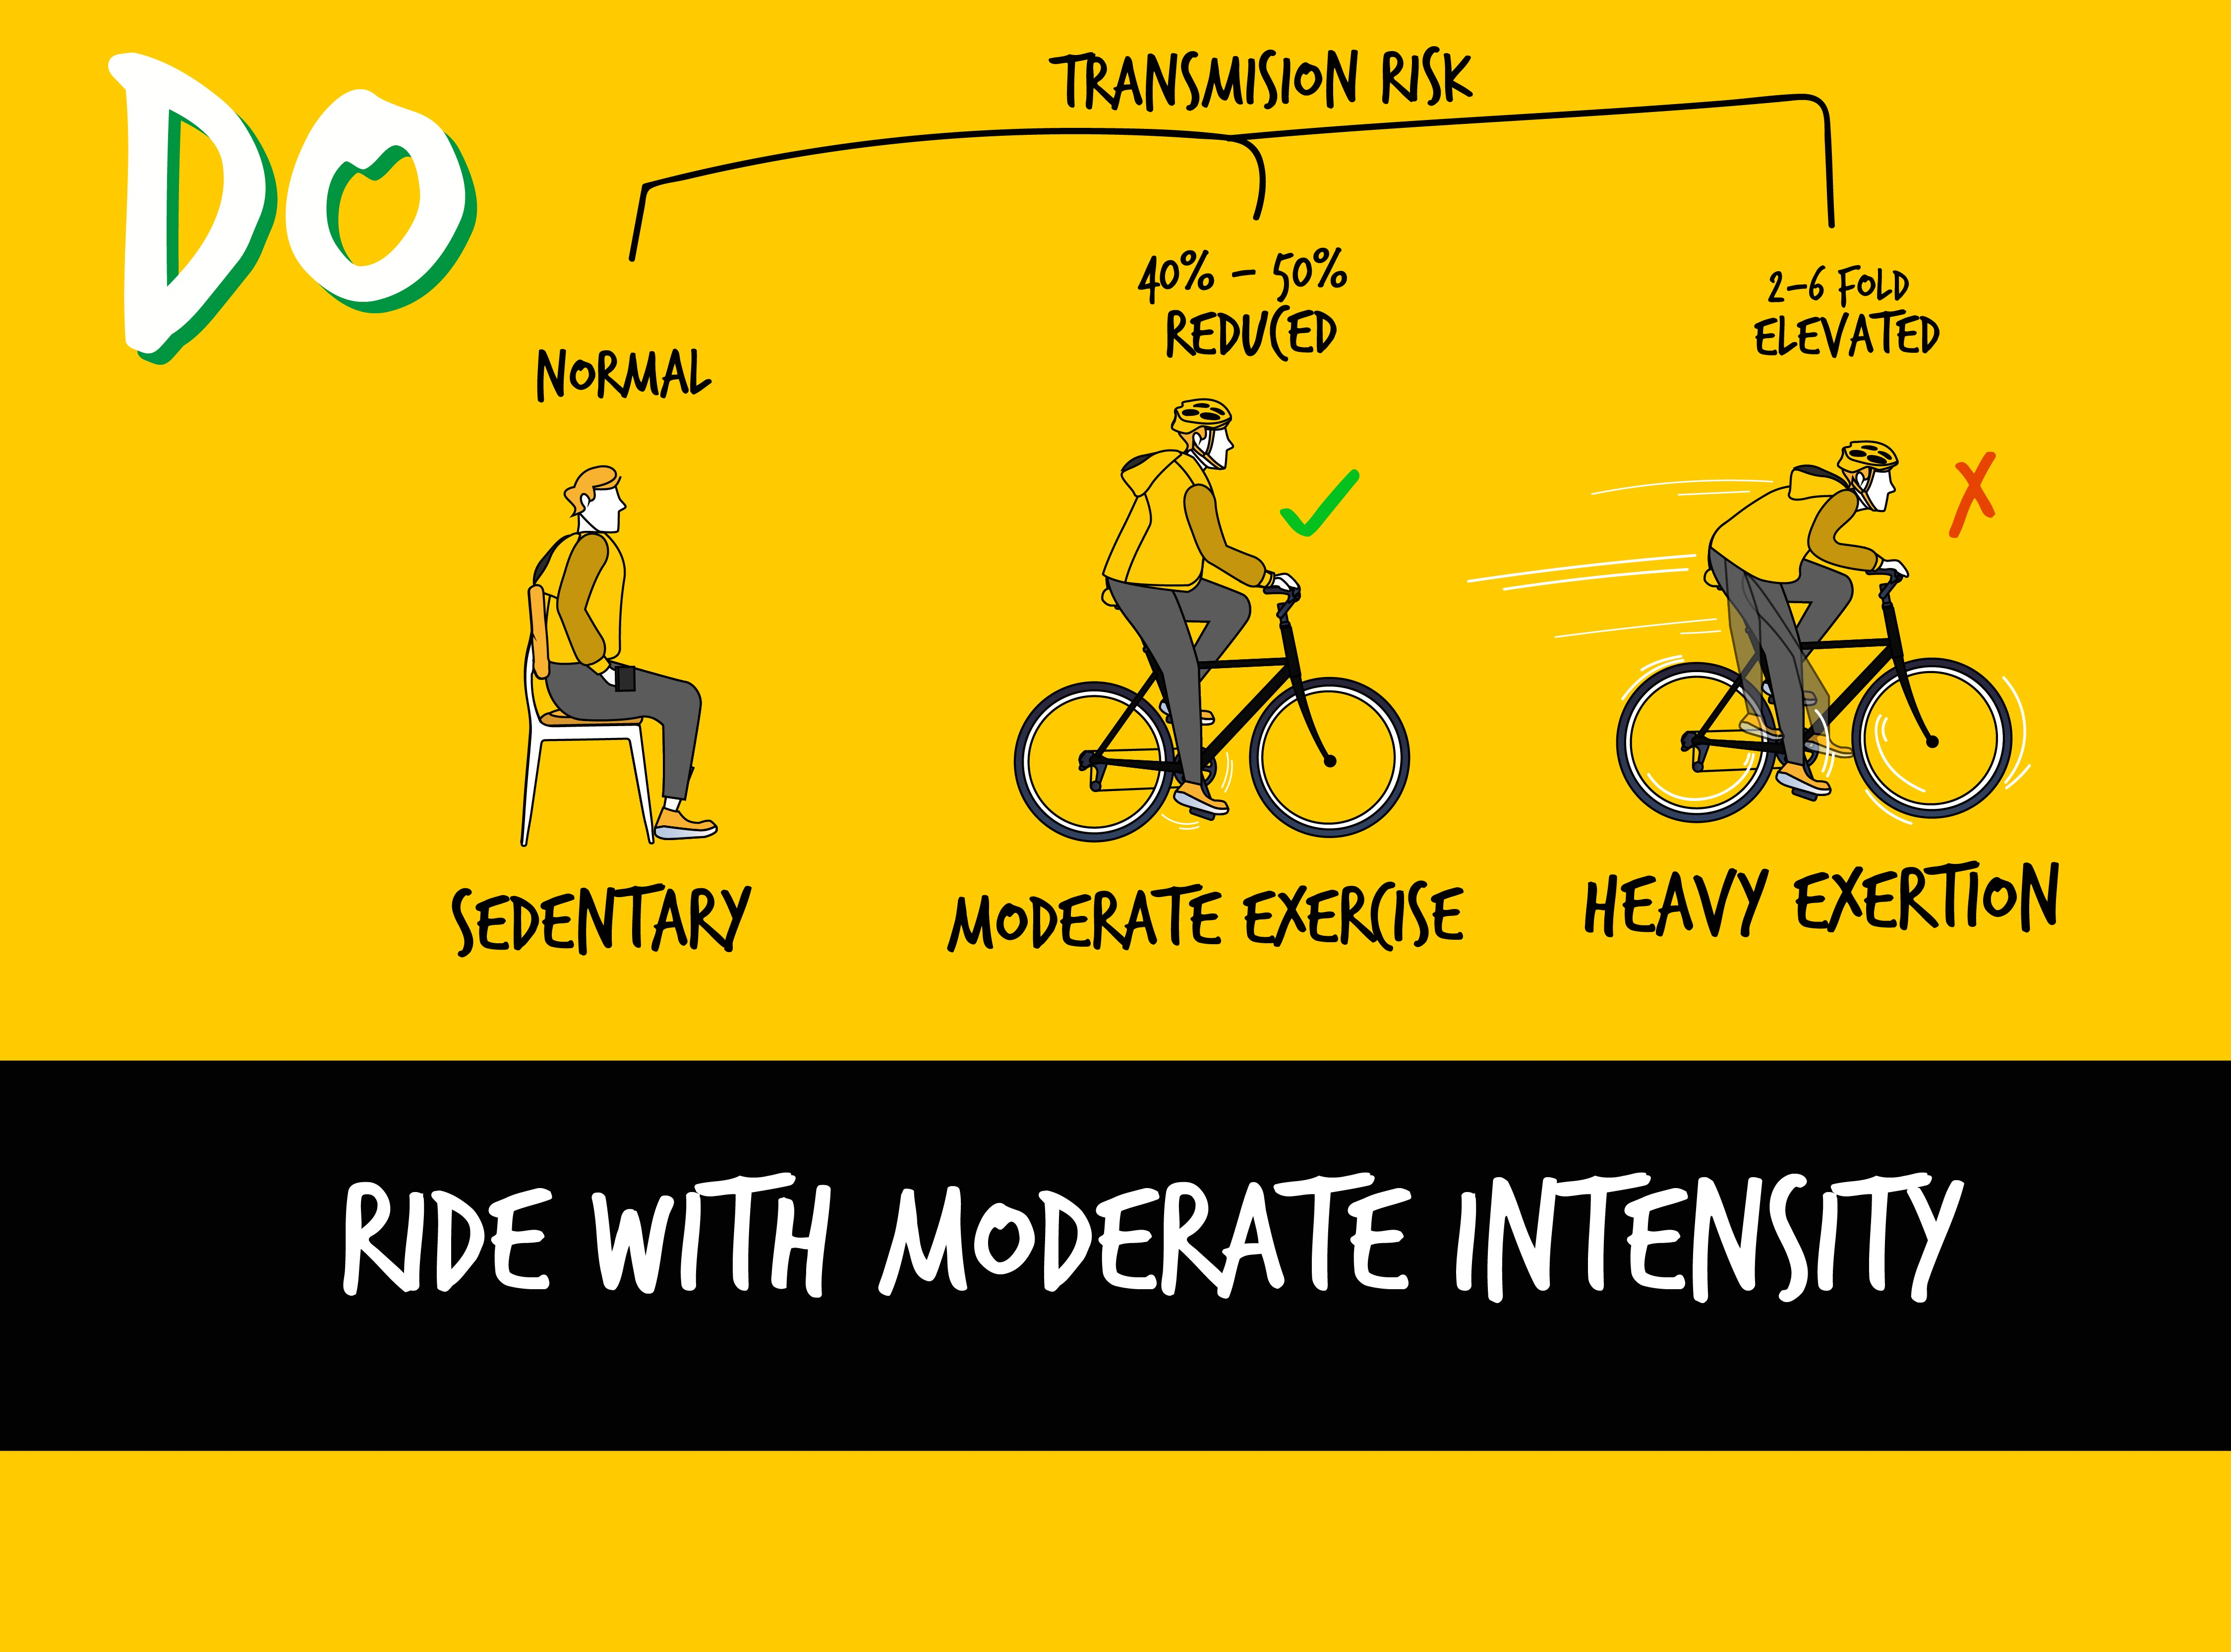 ride with moderate intensity